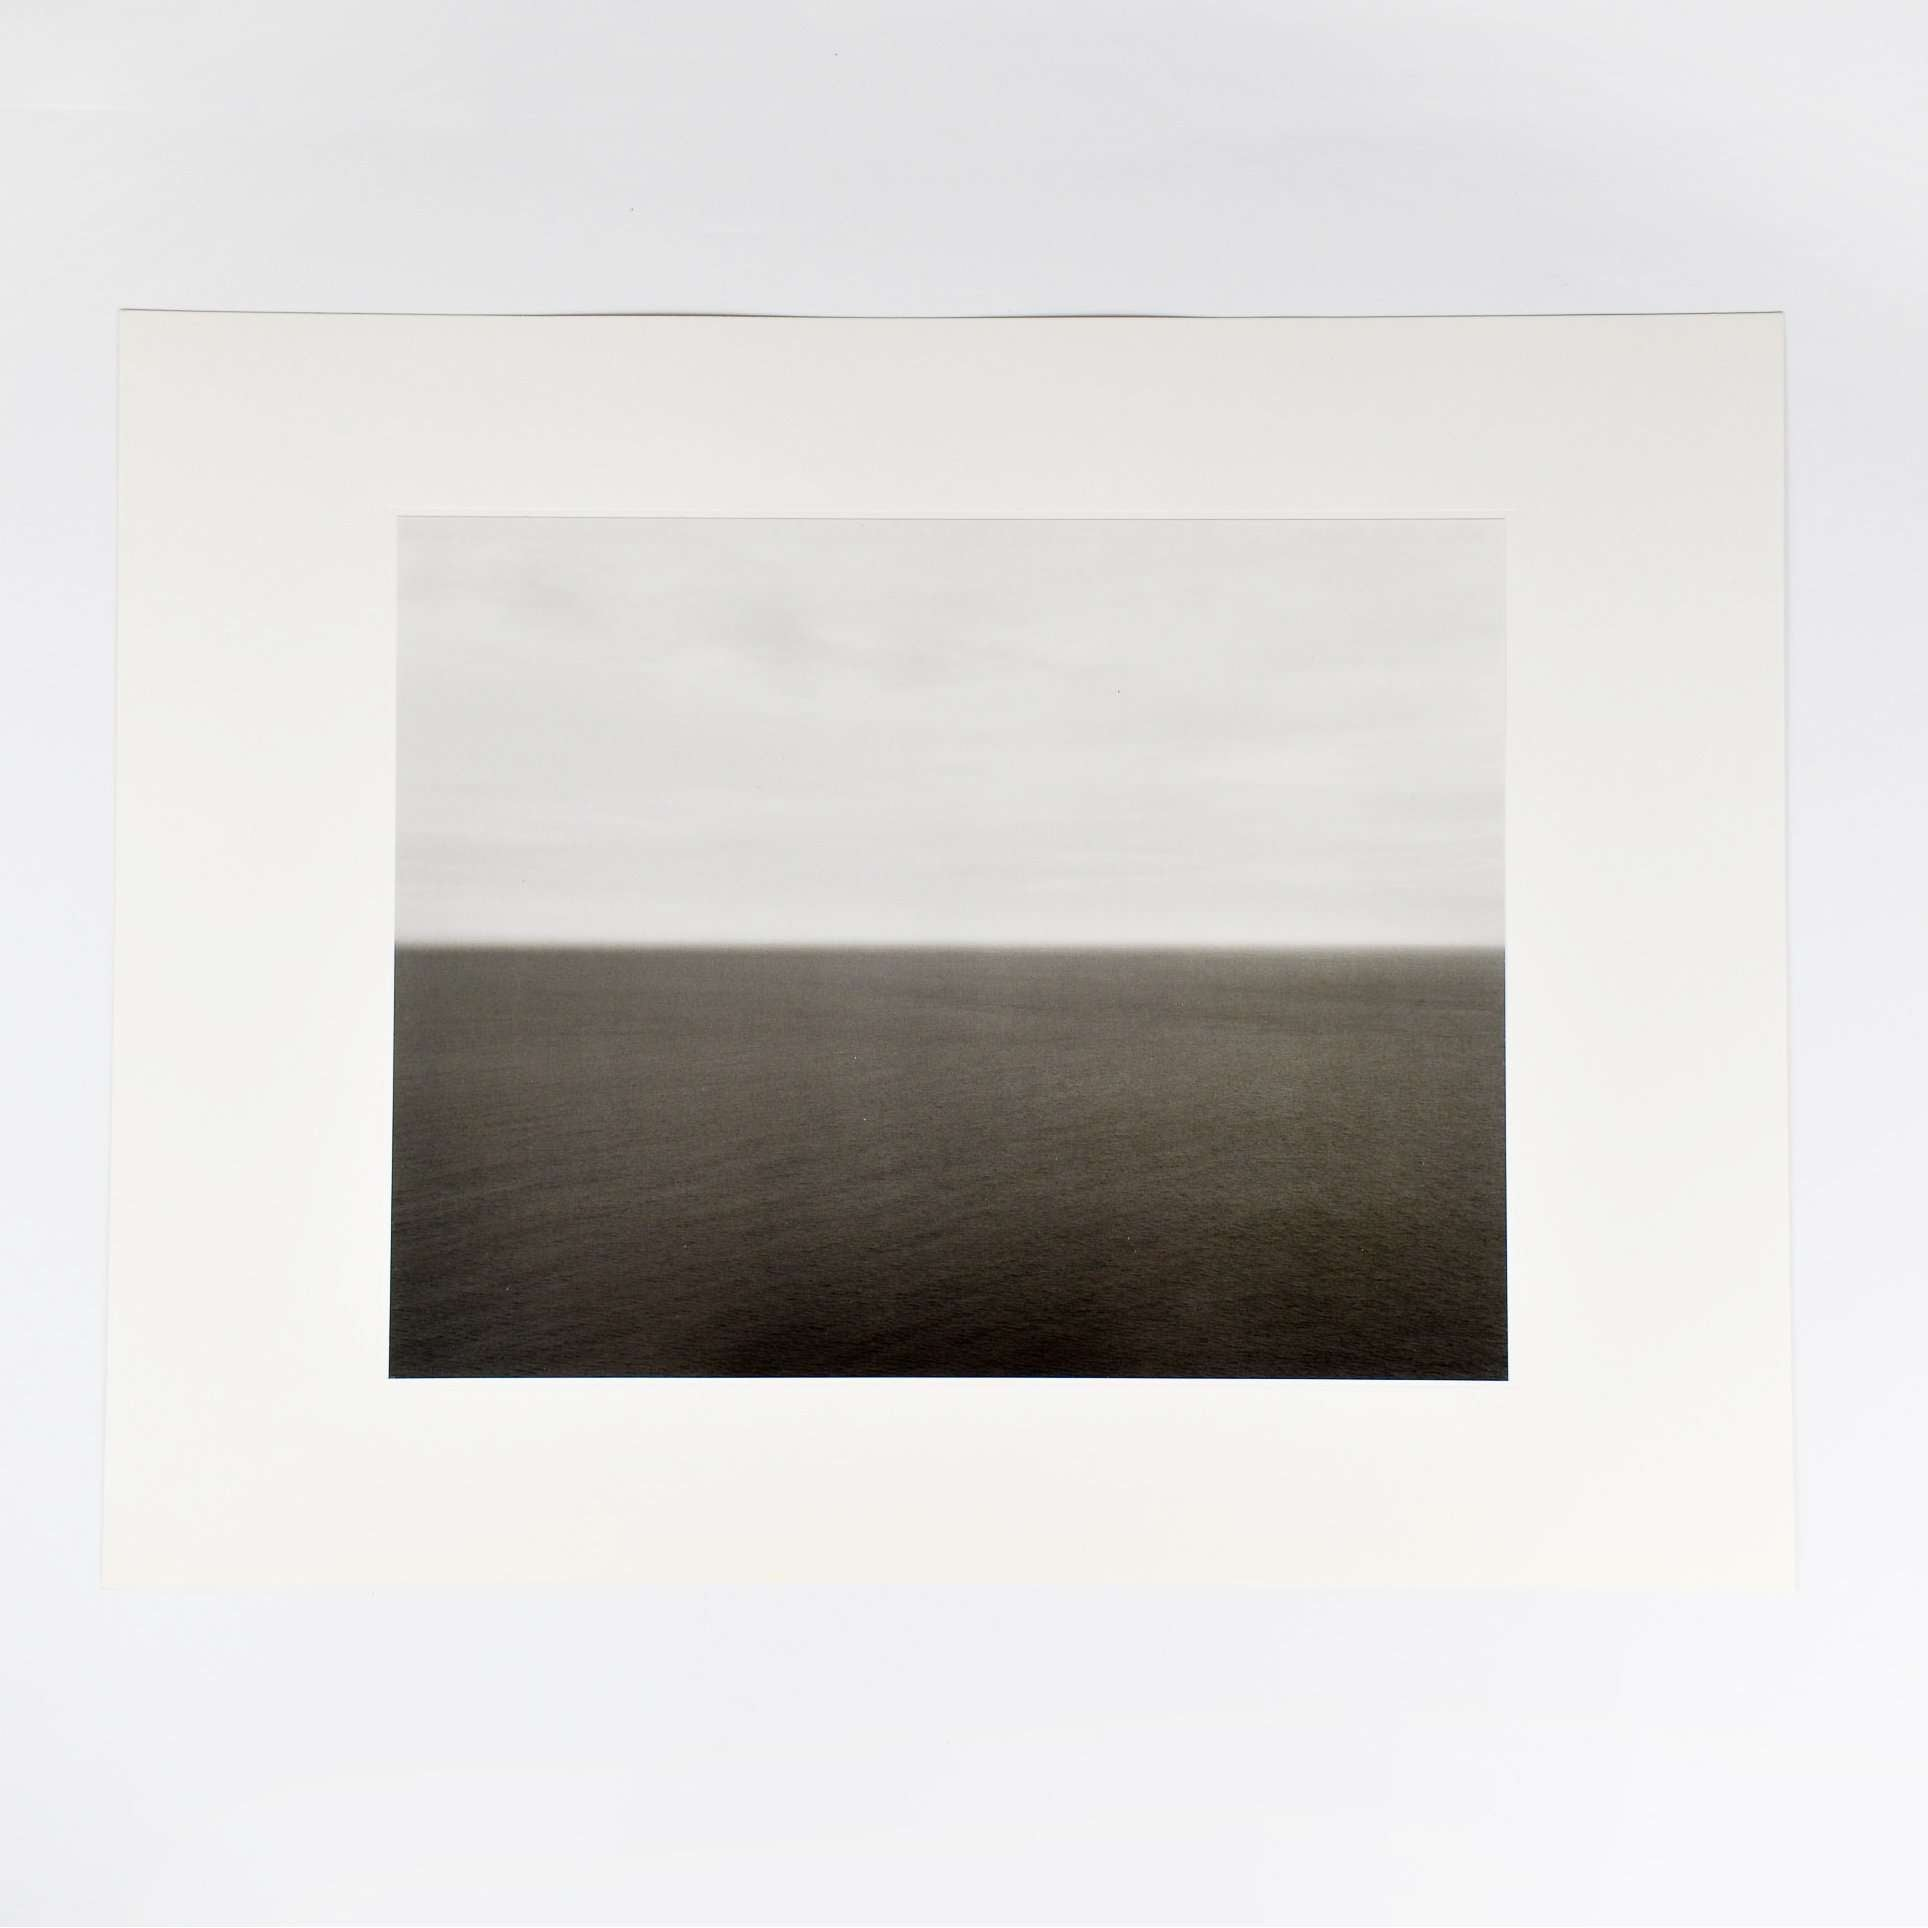 Hiroshi Sugimoto, Time Exposed: #364 Bay of Biscay Bakio 1991, 1991 | Lougher Contemporary